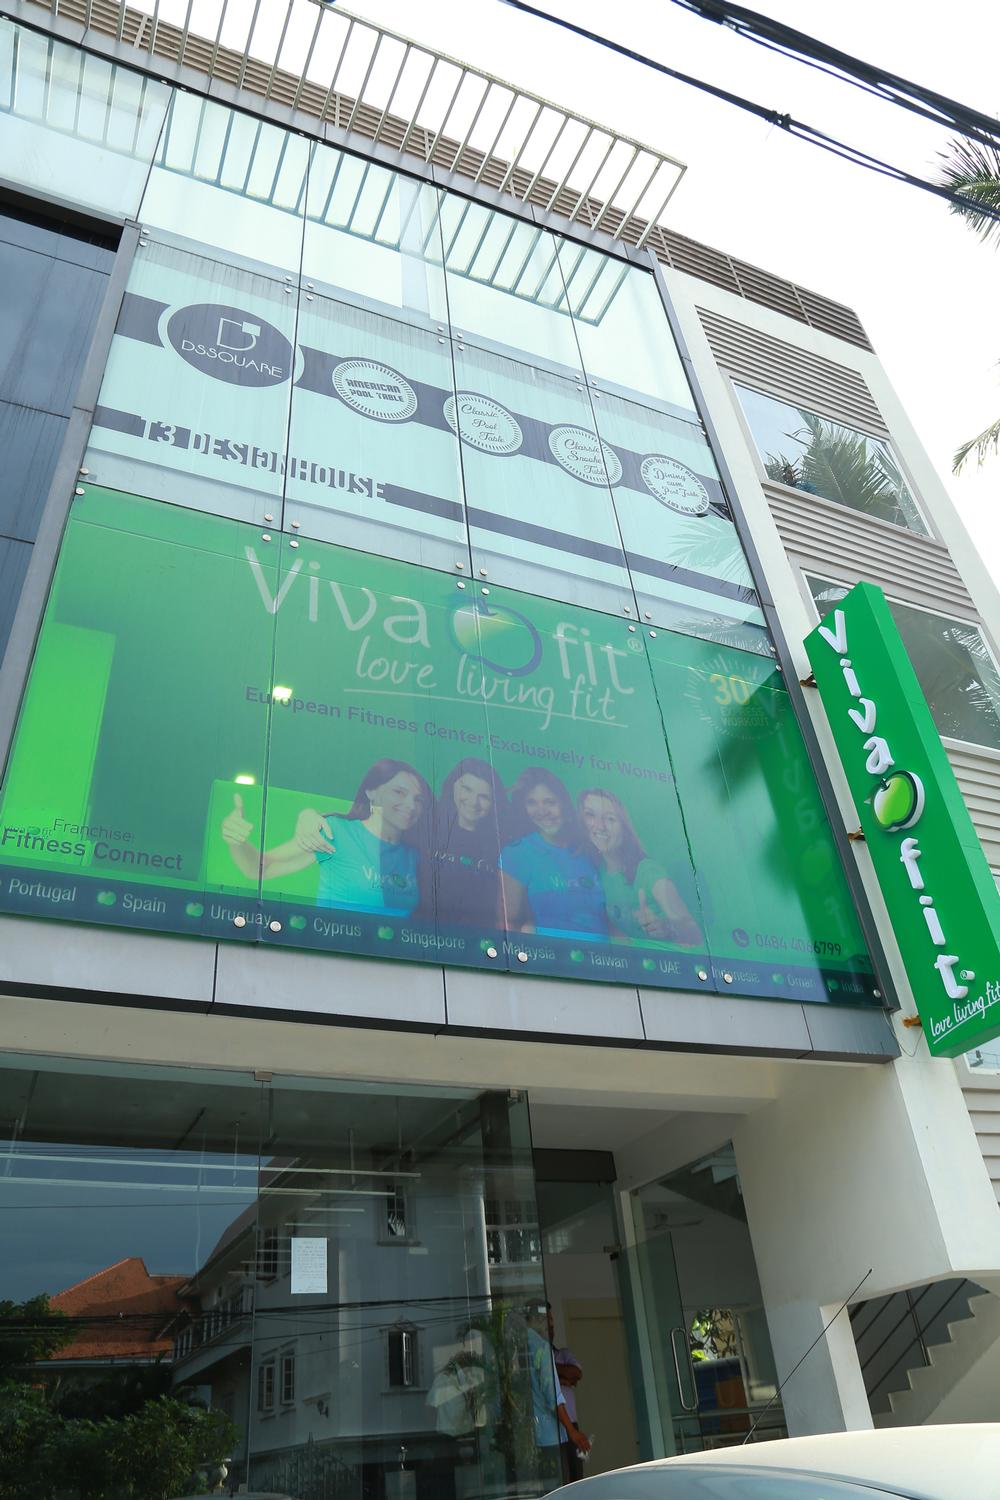 Vivafit started life in Portugal but has since expanded to a number of international markets